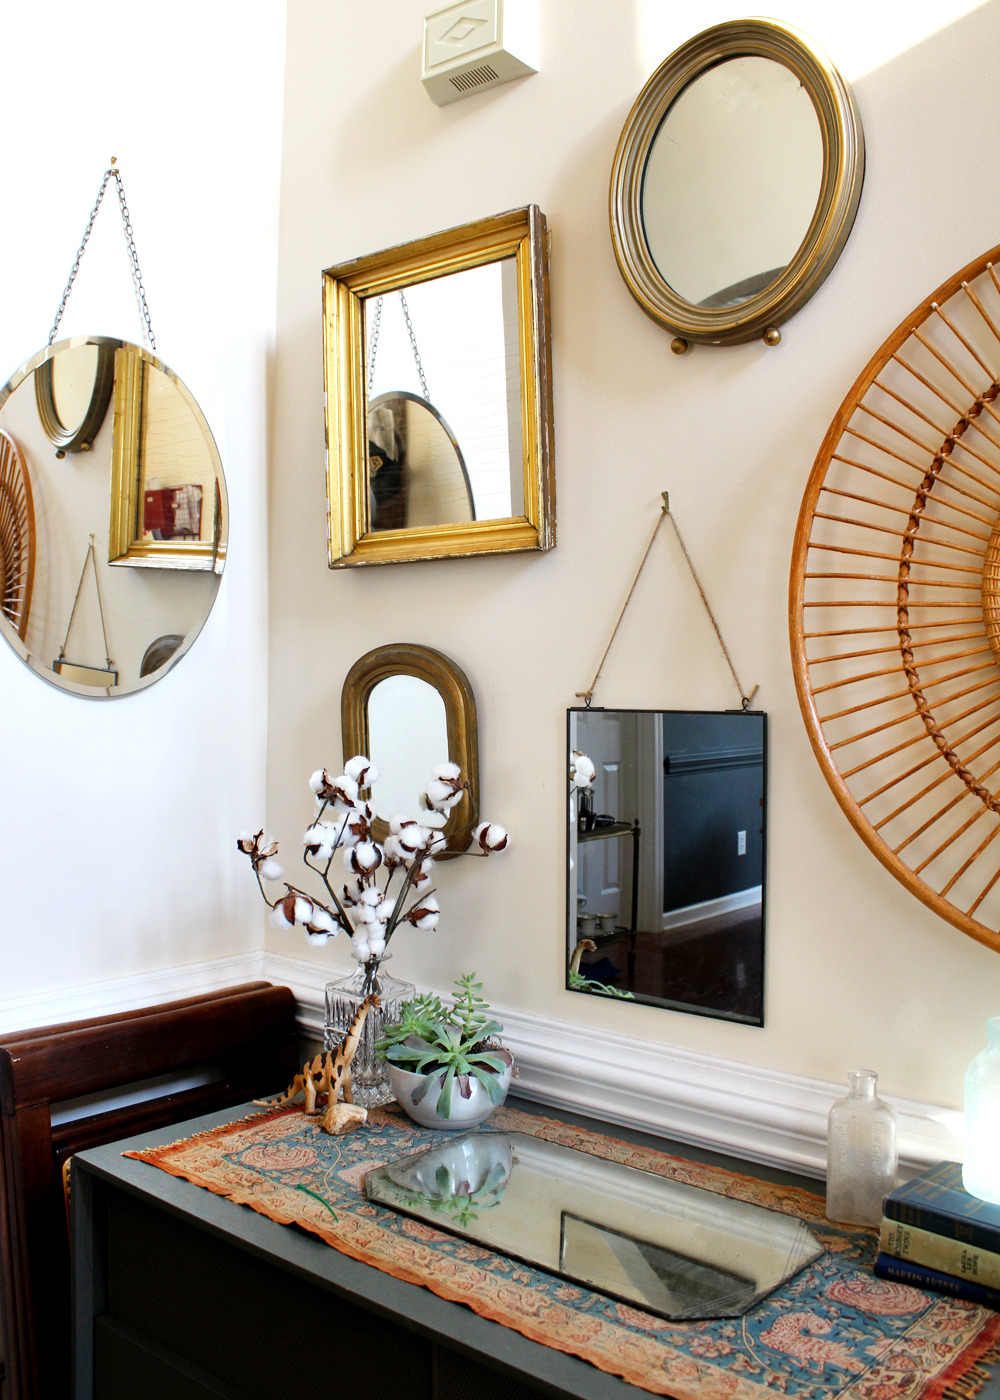 How to design a mirror gallery wall: be sure to add some low mirrors for children, and a few at eye level for adults